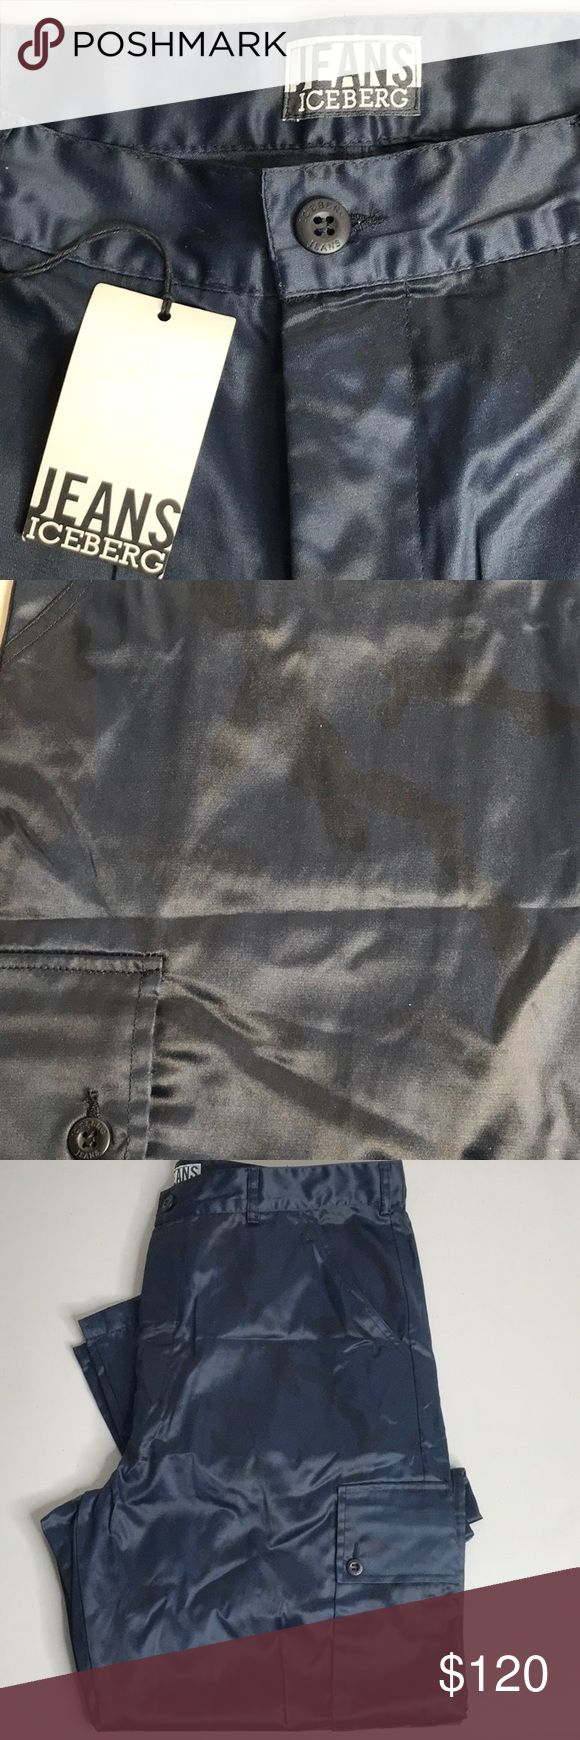 Iceberg Slick Cargo Pants !!!! RARE ... NWT !!!!  Slick cargo pants from Iceberg Jeans. Navy blue with an all over faint black camouflage print. Iceberg Pants Cargo